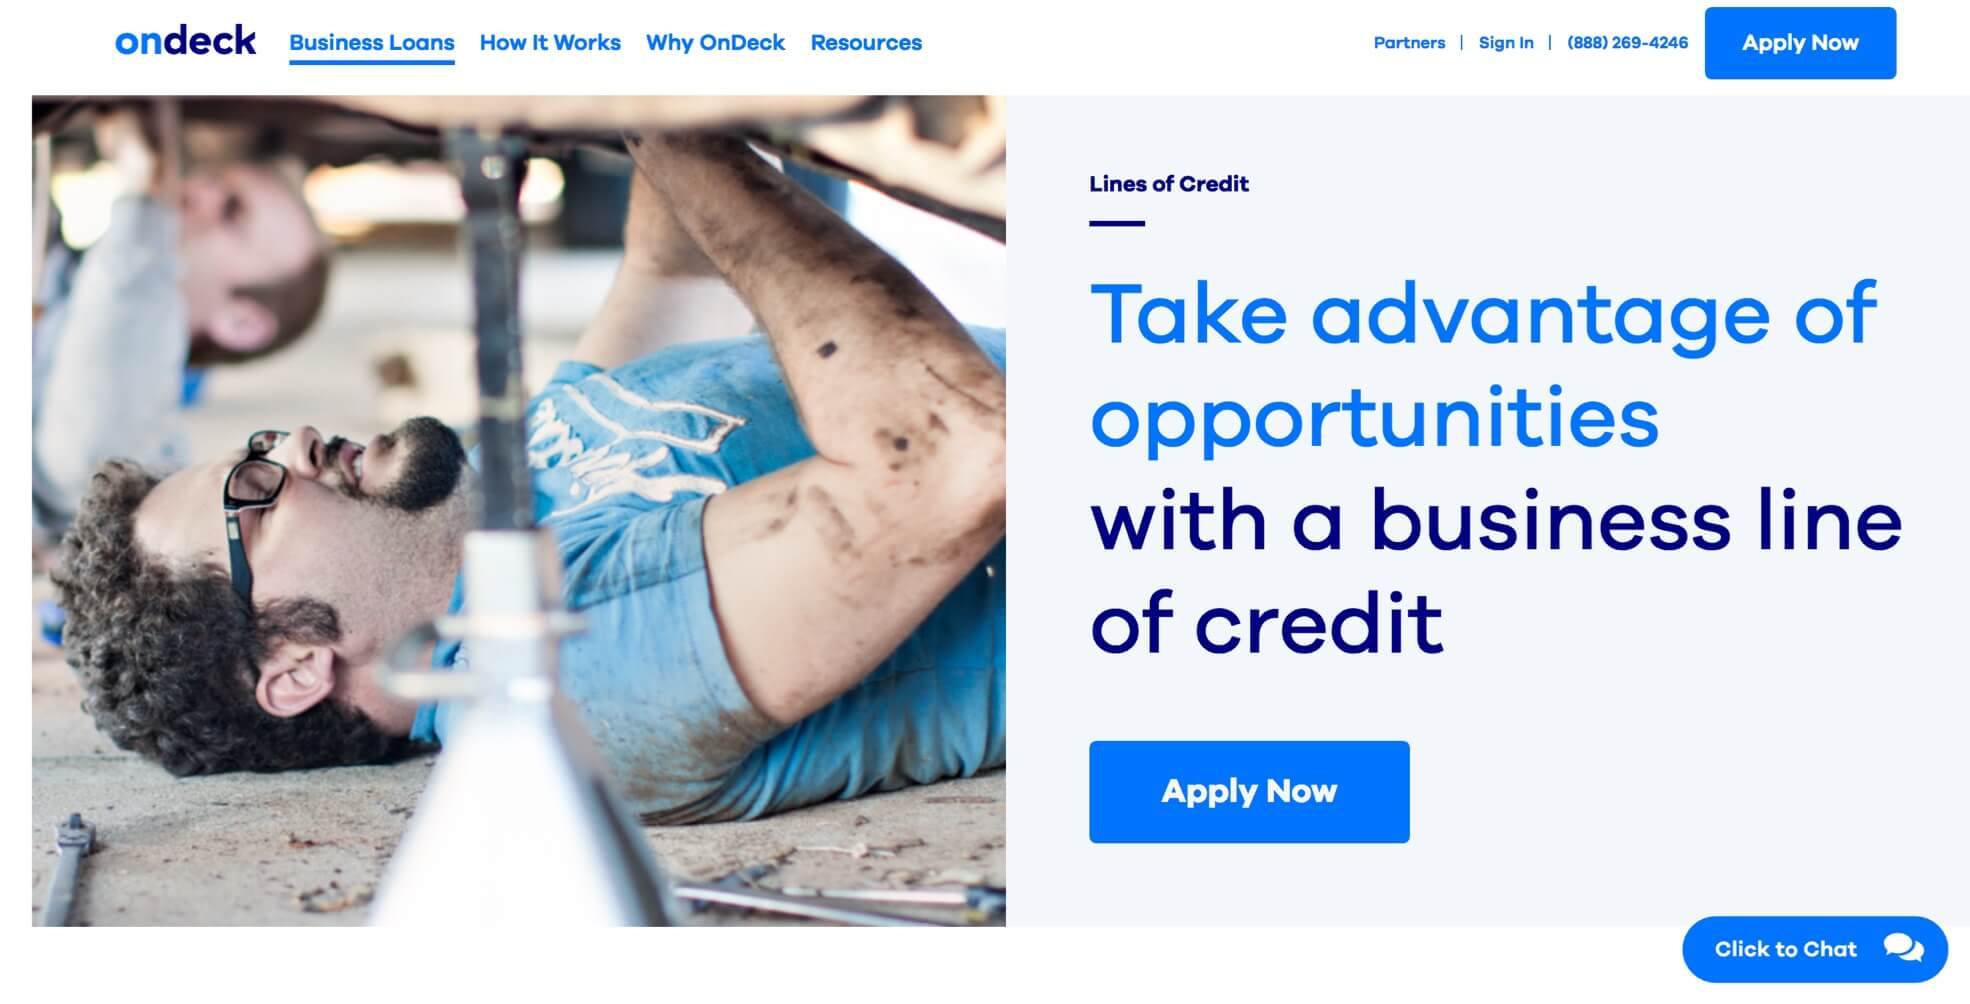 OnDeck business line of credit